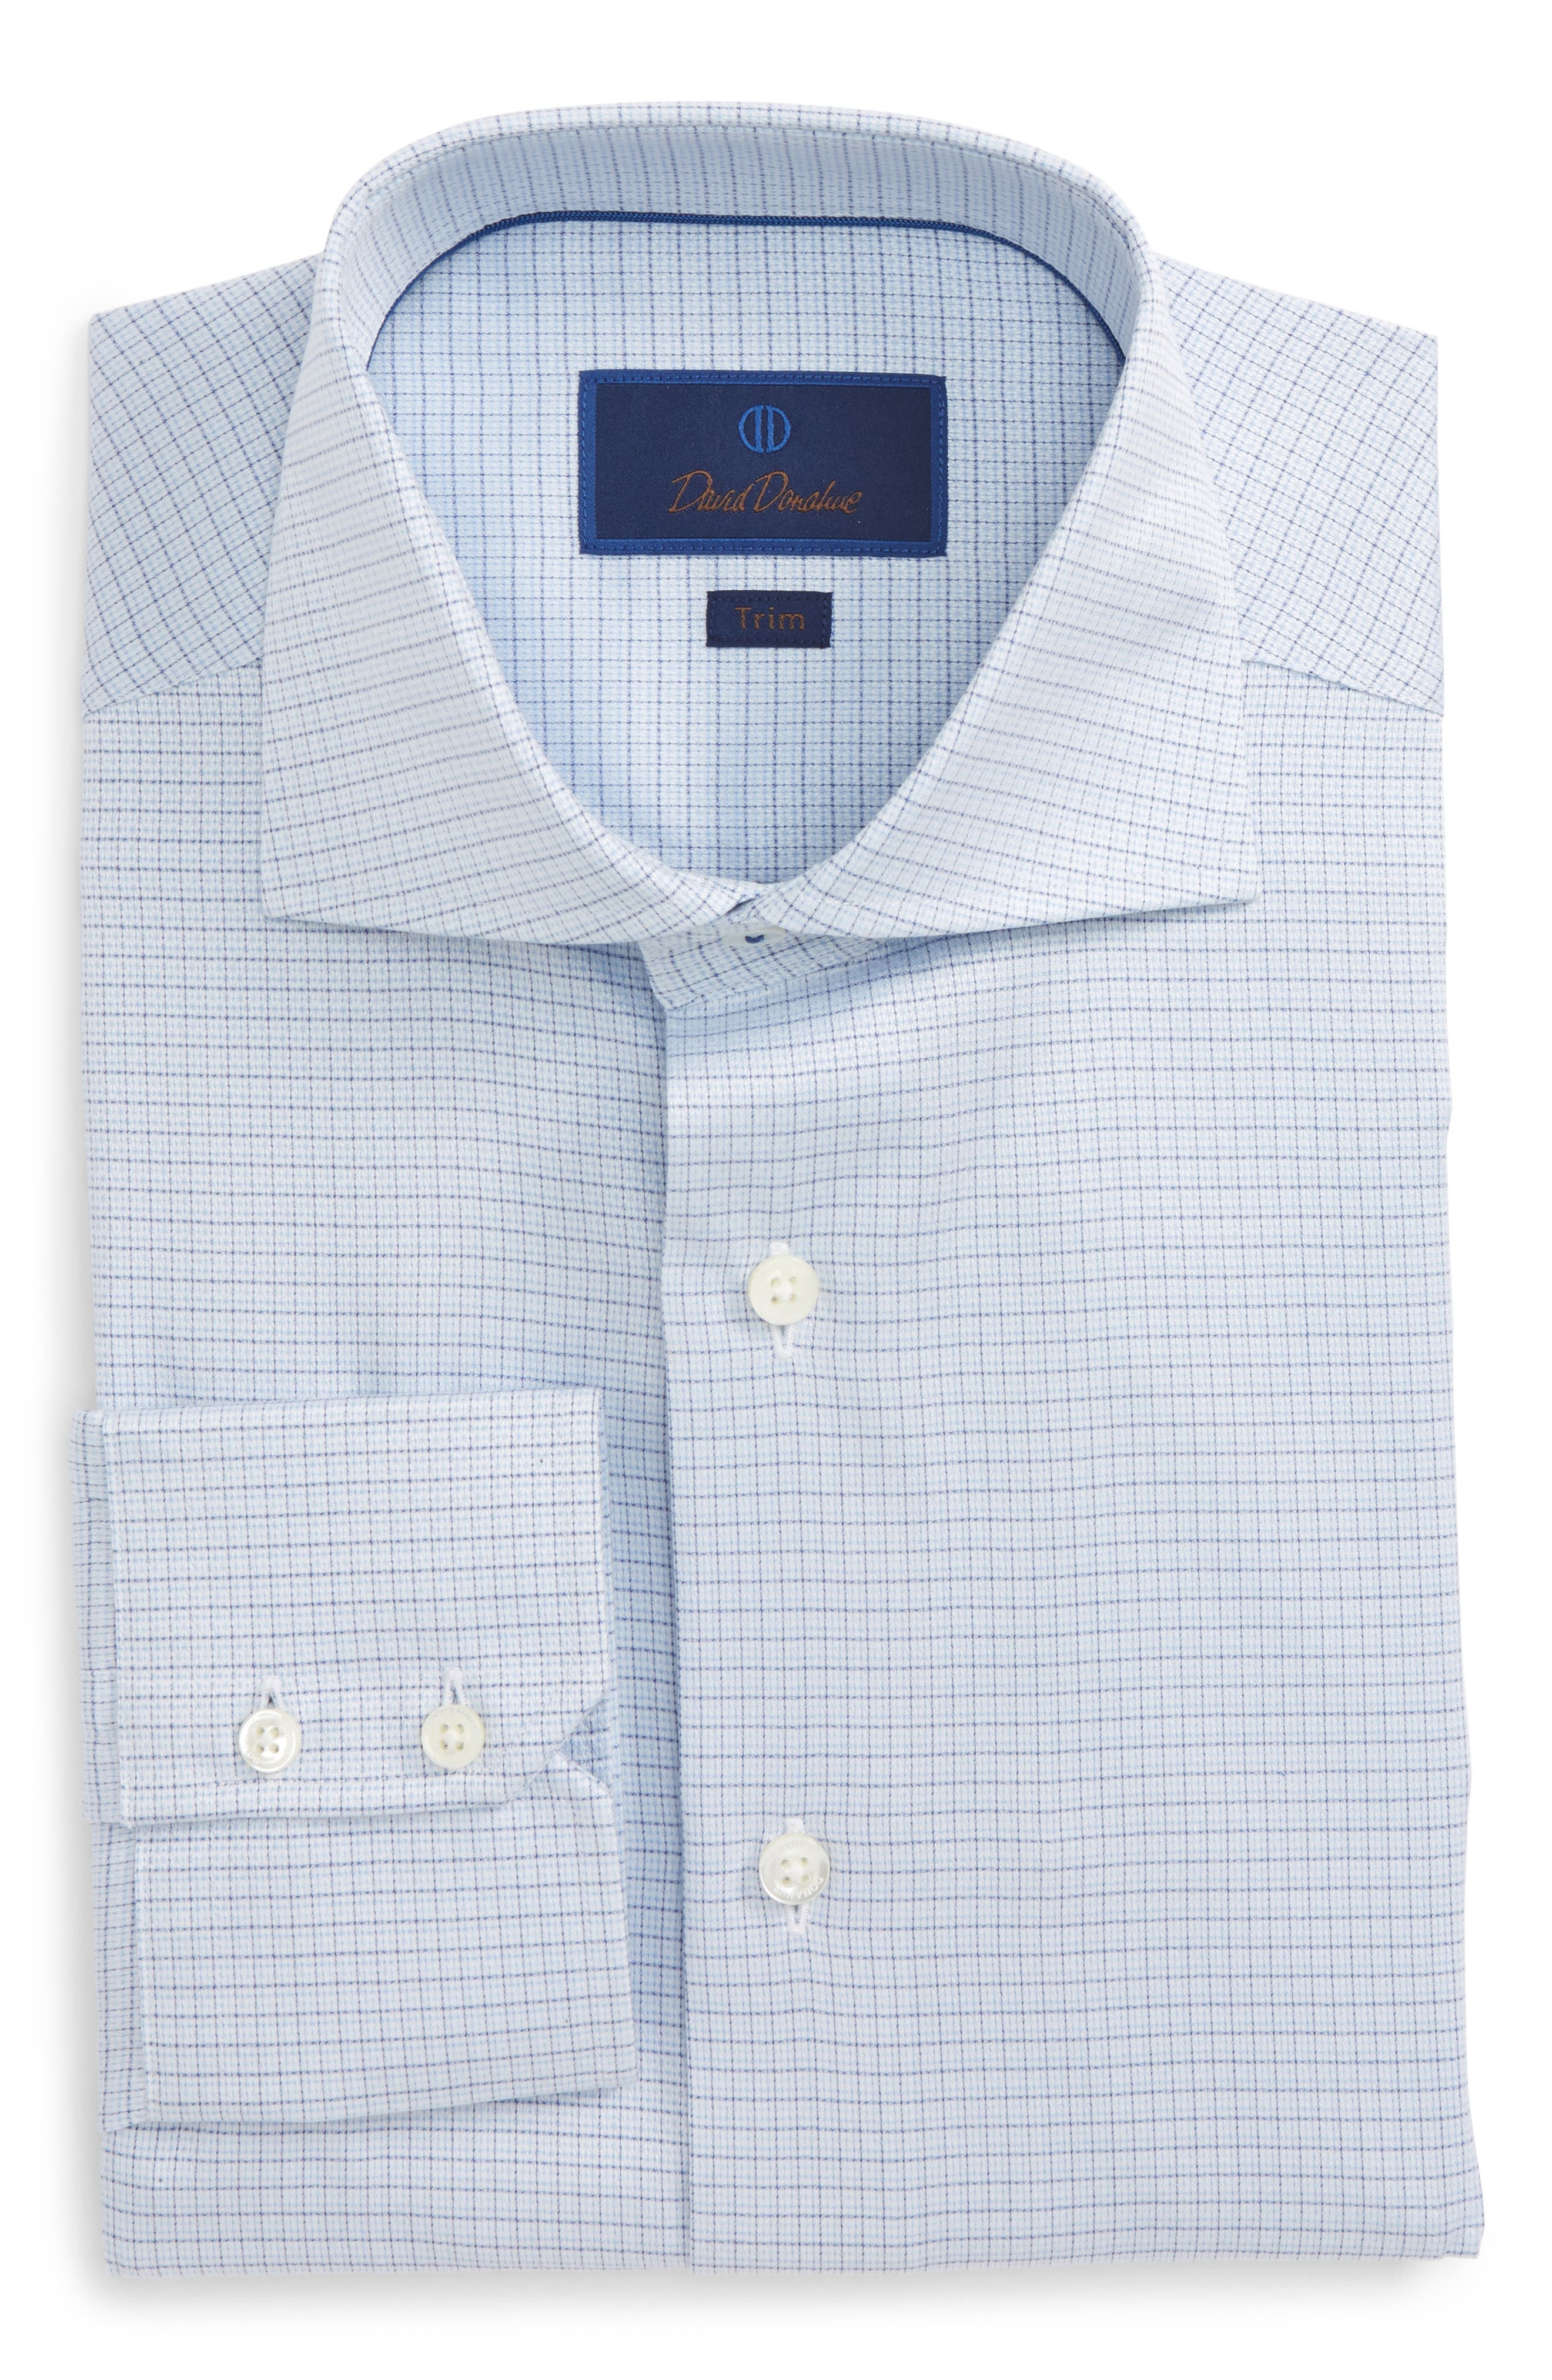 Trim Fit Check Dress Shirt,                             Main thumbnail 1, color,                             423